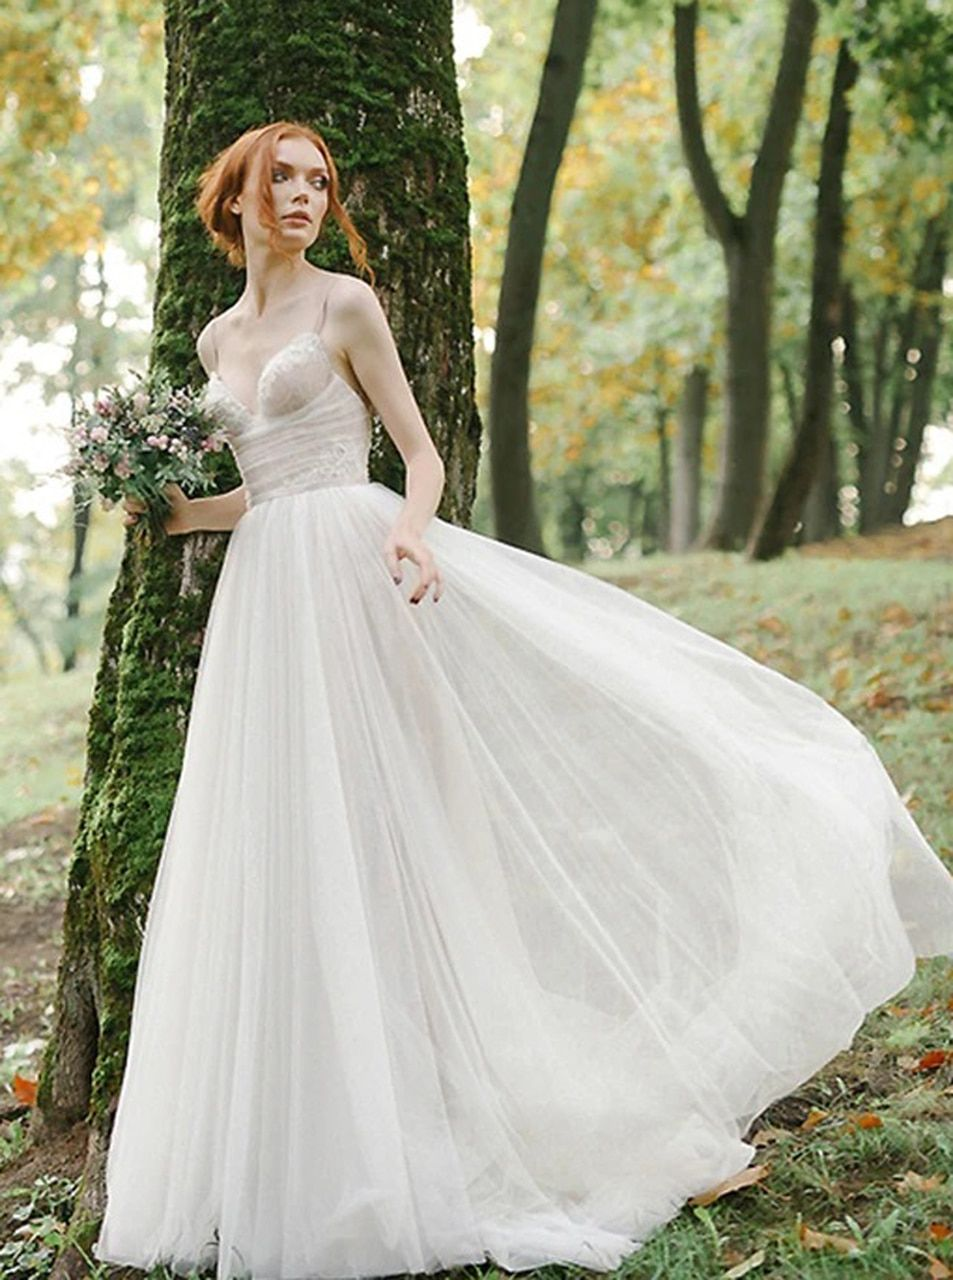 Simple Outdoor Wedding Dresses Tulle And Lace Garden Bridal Dress 12182 Bridal Dresses Outdoor Wedding Dress Wedding Dresses [ 1280 x 953 Pixel ]